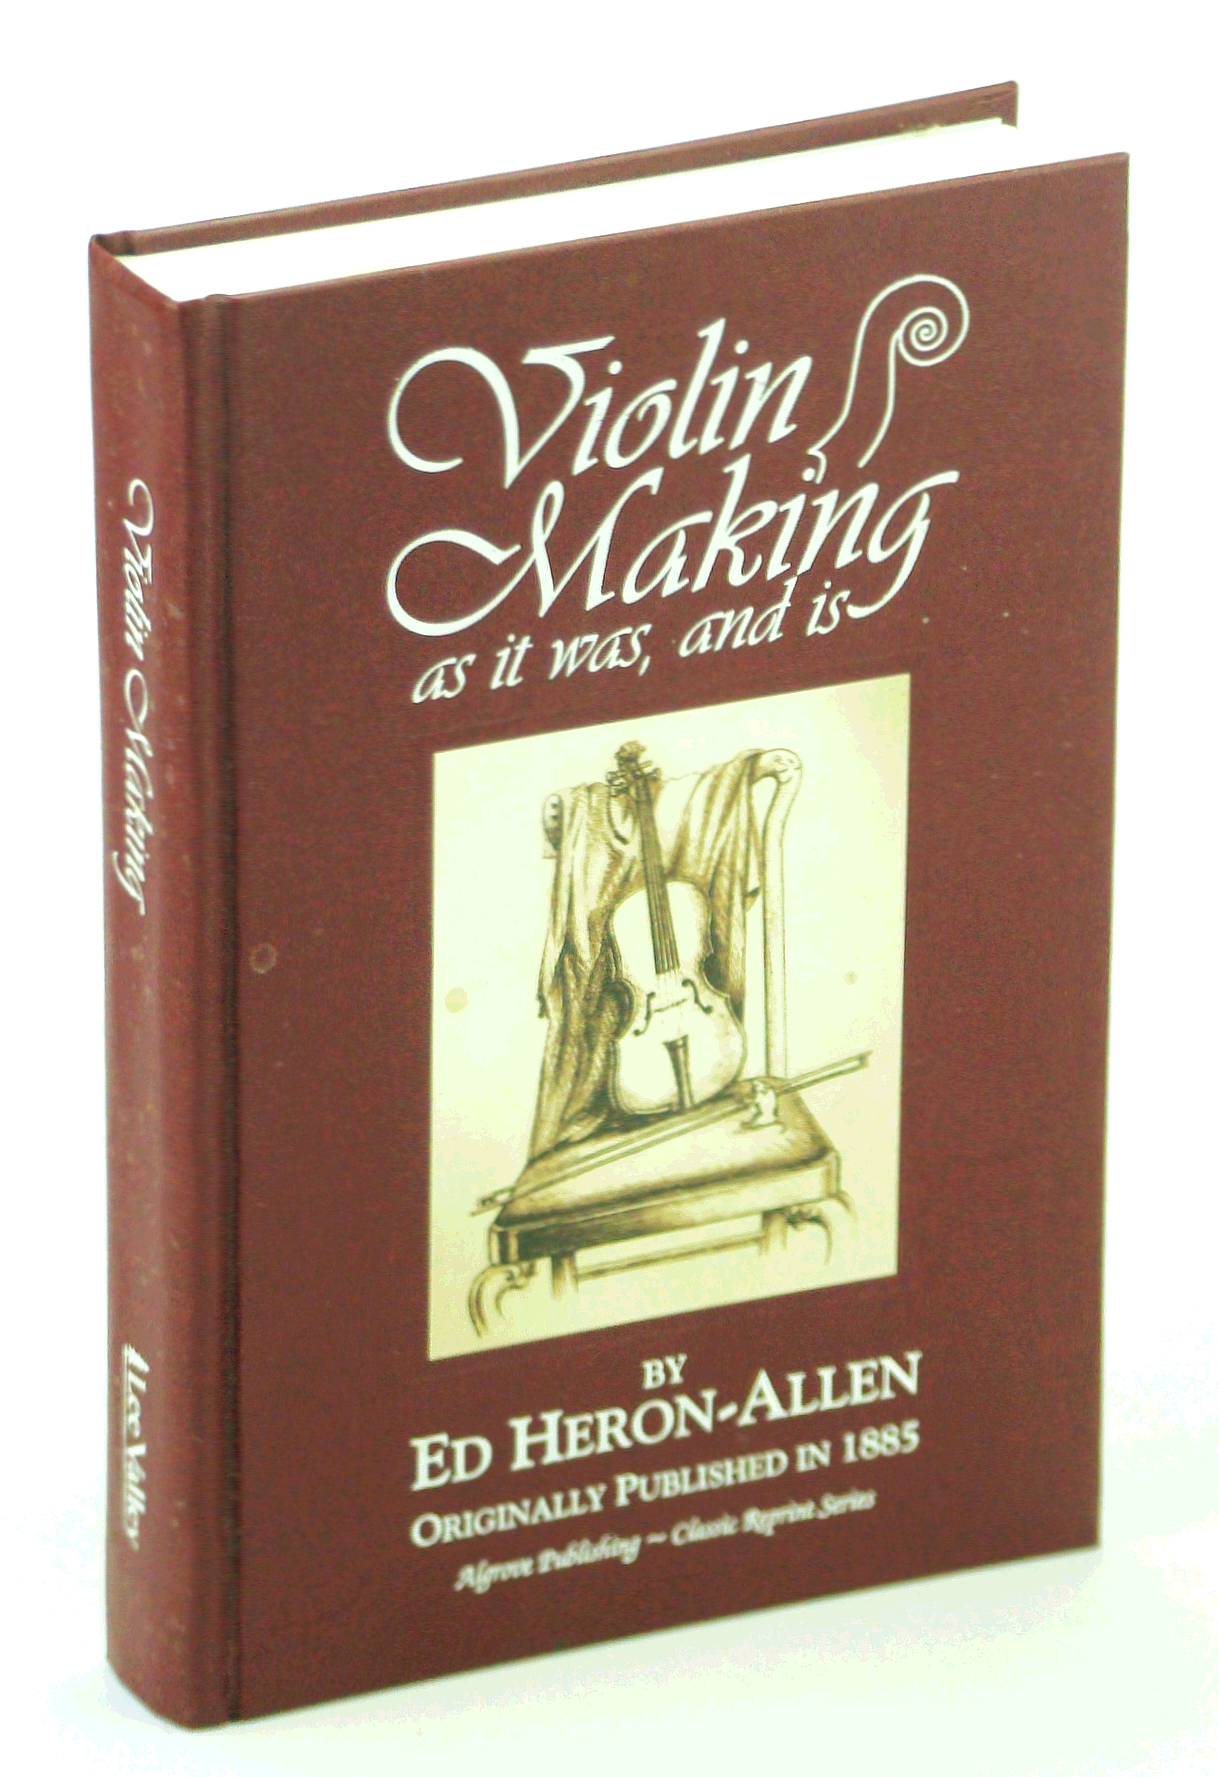 Image for Violin-Making, as It Was and Is : Being a Historical, Theoretical and Practical Treatise on the Science & Art of Violin-Making for the Use of Violin Makers and Players, Amateur and Professional (Classic Reprint Ser.)